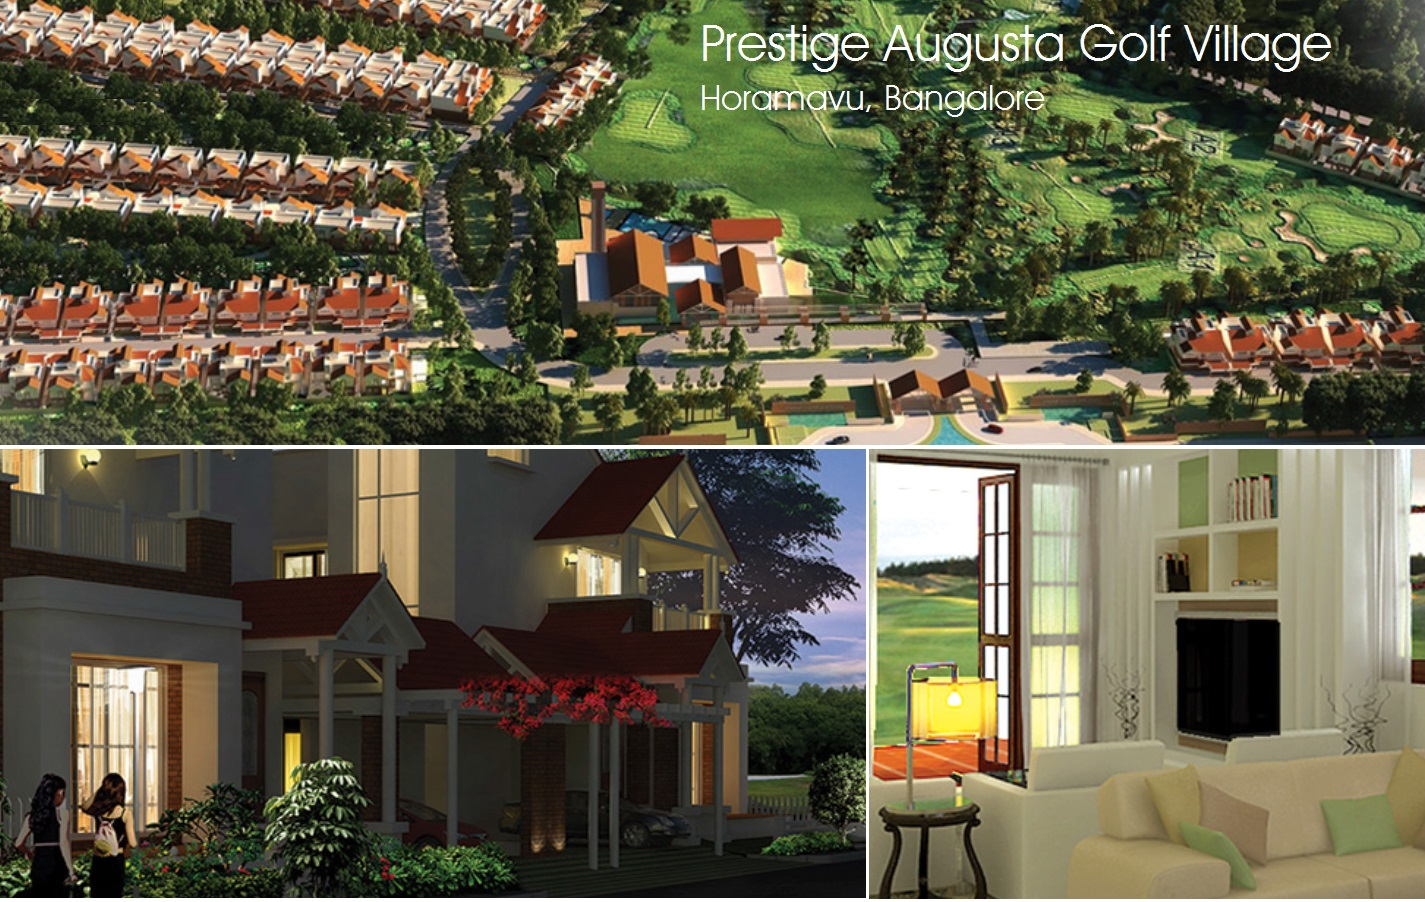 Prestige Augusta Golf Village Bangalore